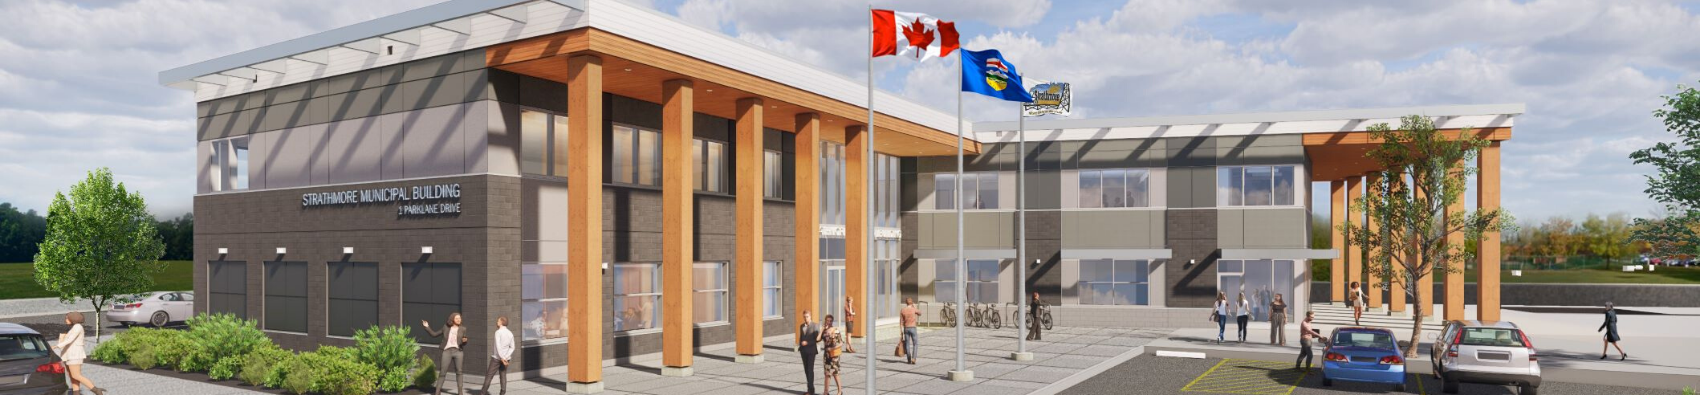 Artist rendering of new municipal building